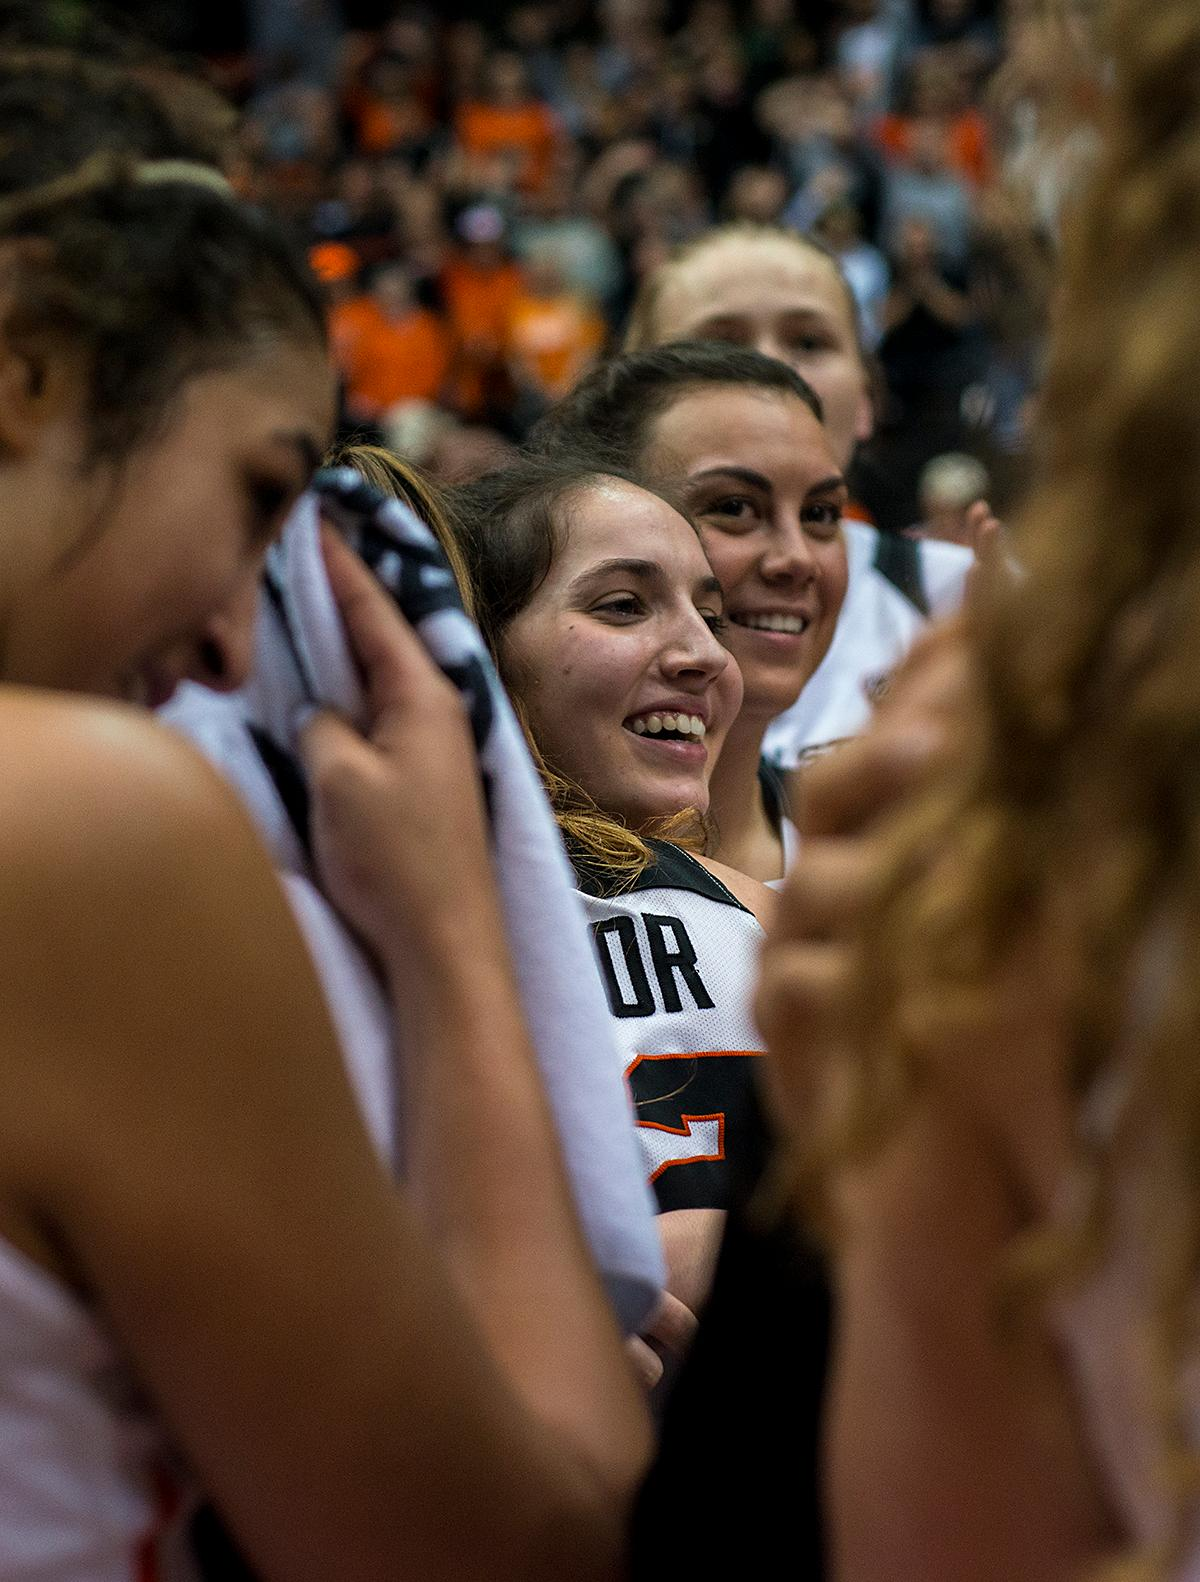 The Oregon State Beavers celebrate their win.The Oregon Ducks were defeated by the Oregon State Beavers 85-79 on Friday night in Corvallis. Sabrina Ionescu scored 35 points and Ruthy Hebard added 24. The Ducks will face the Beavers this Sunday at 5 p.m. at Matthew Knight Arena. Photo by Abigail Winn, Oregon News Lab